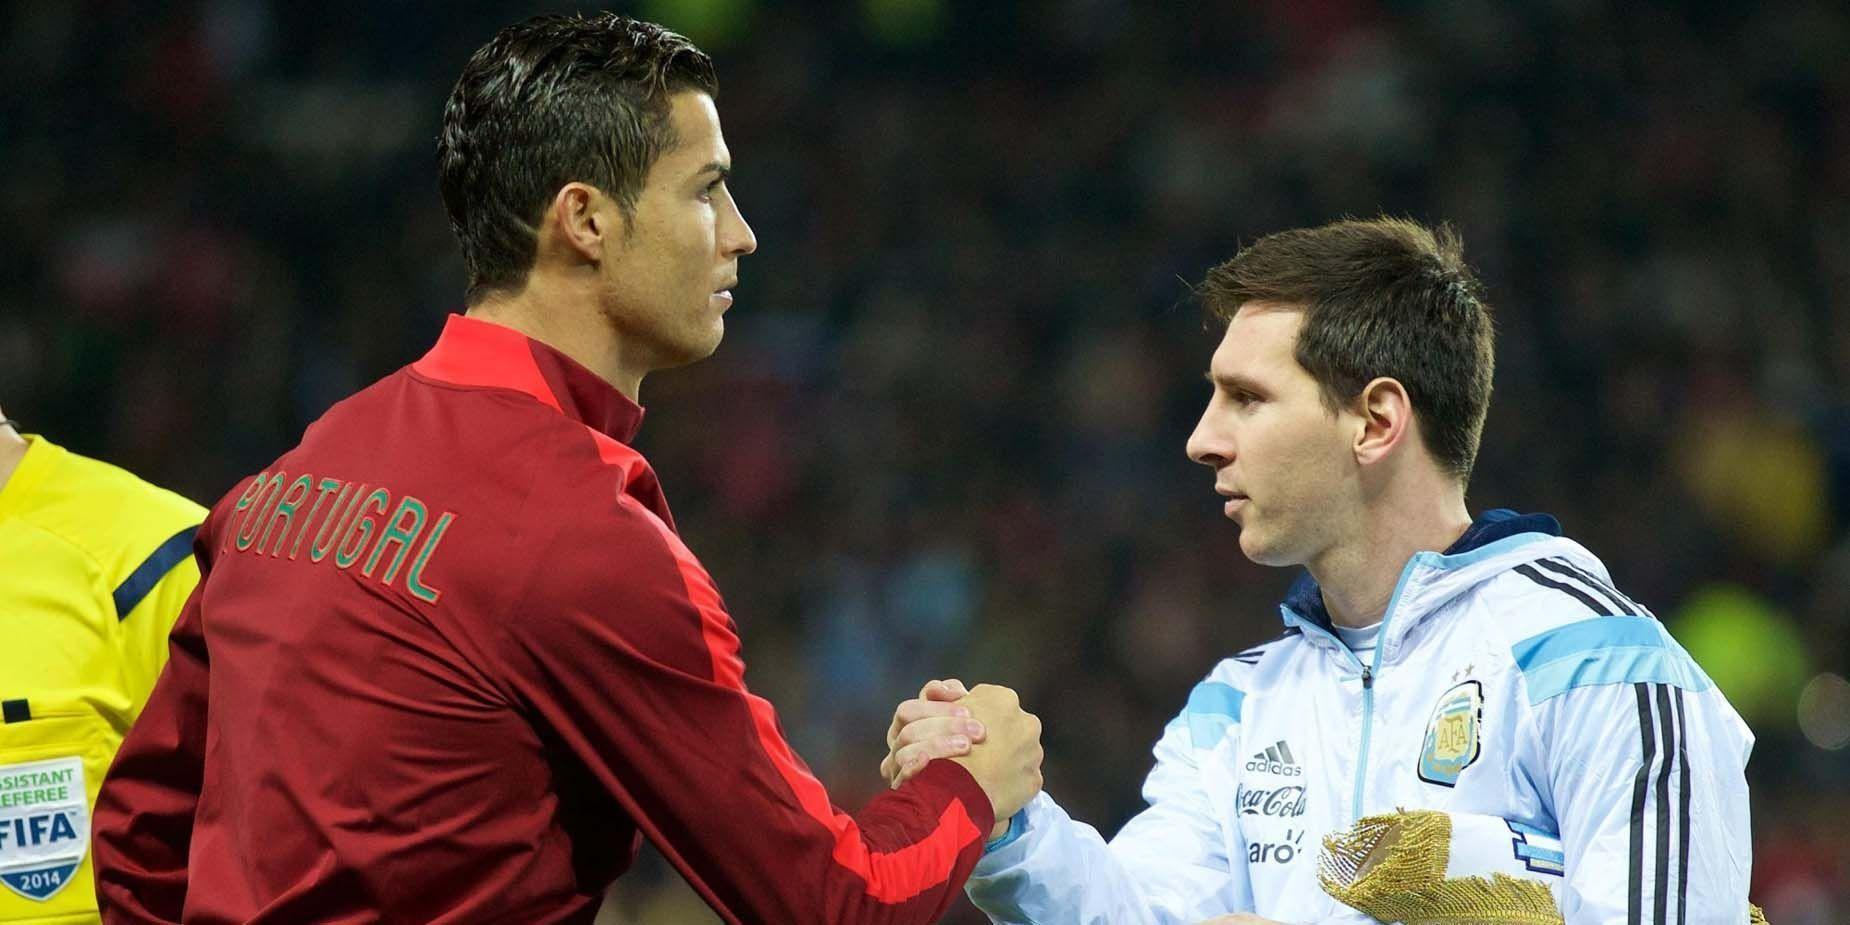 ronaldo vs messi wallpaper 2014 wwwimgkidcom the